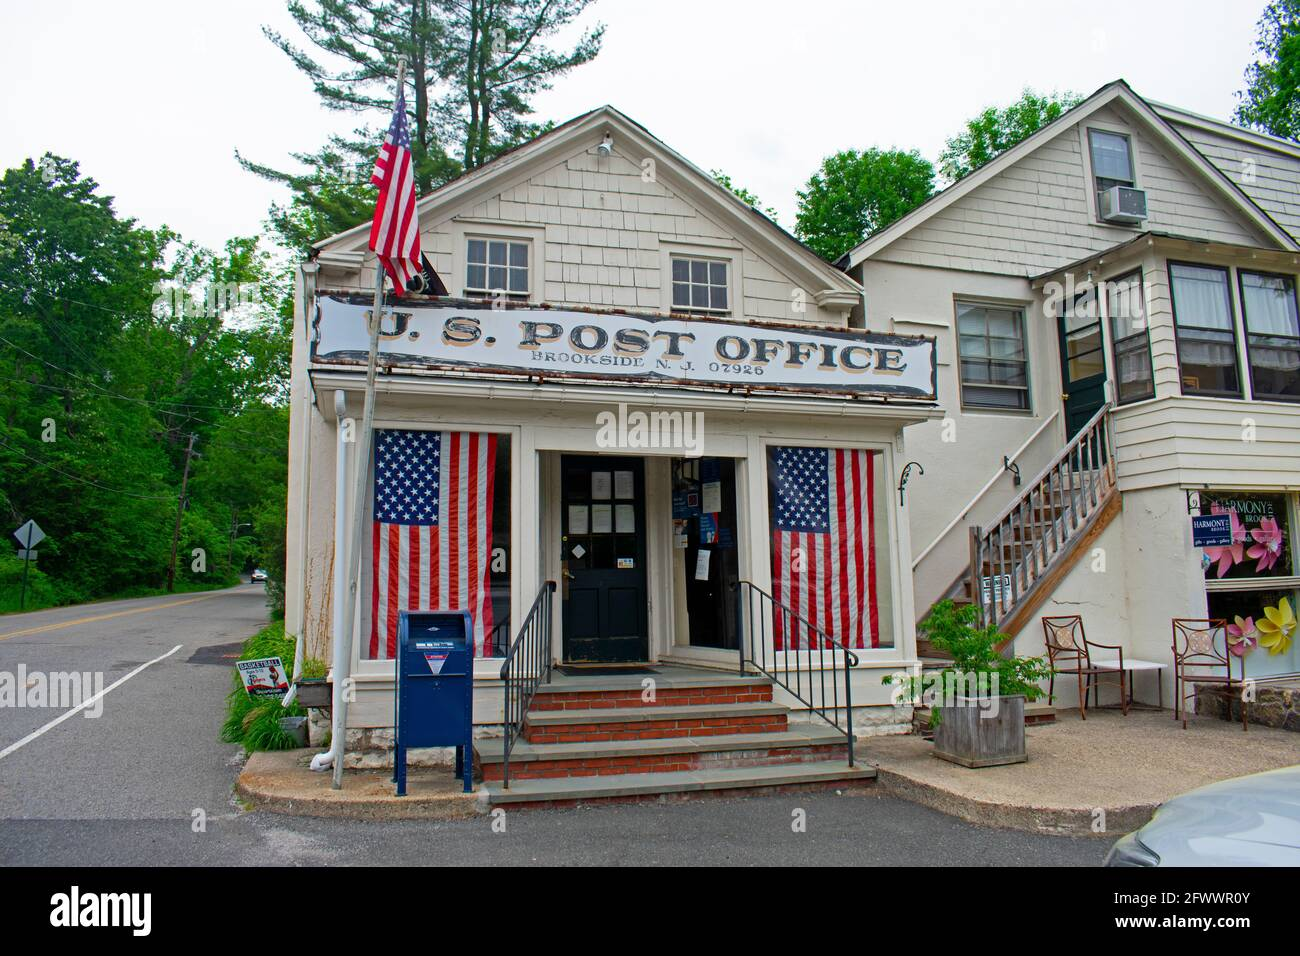 Po Box High Resolution Stock Photography And Images Alamy